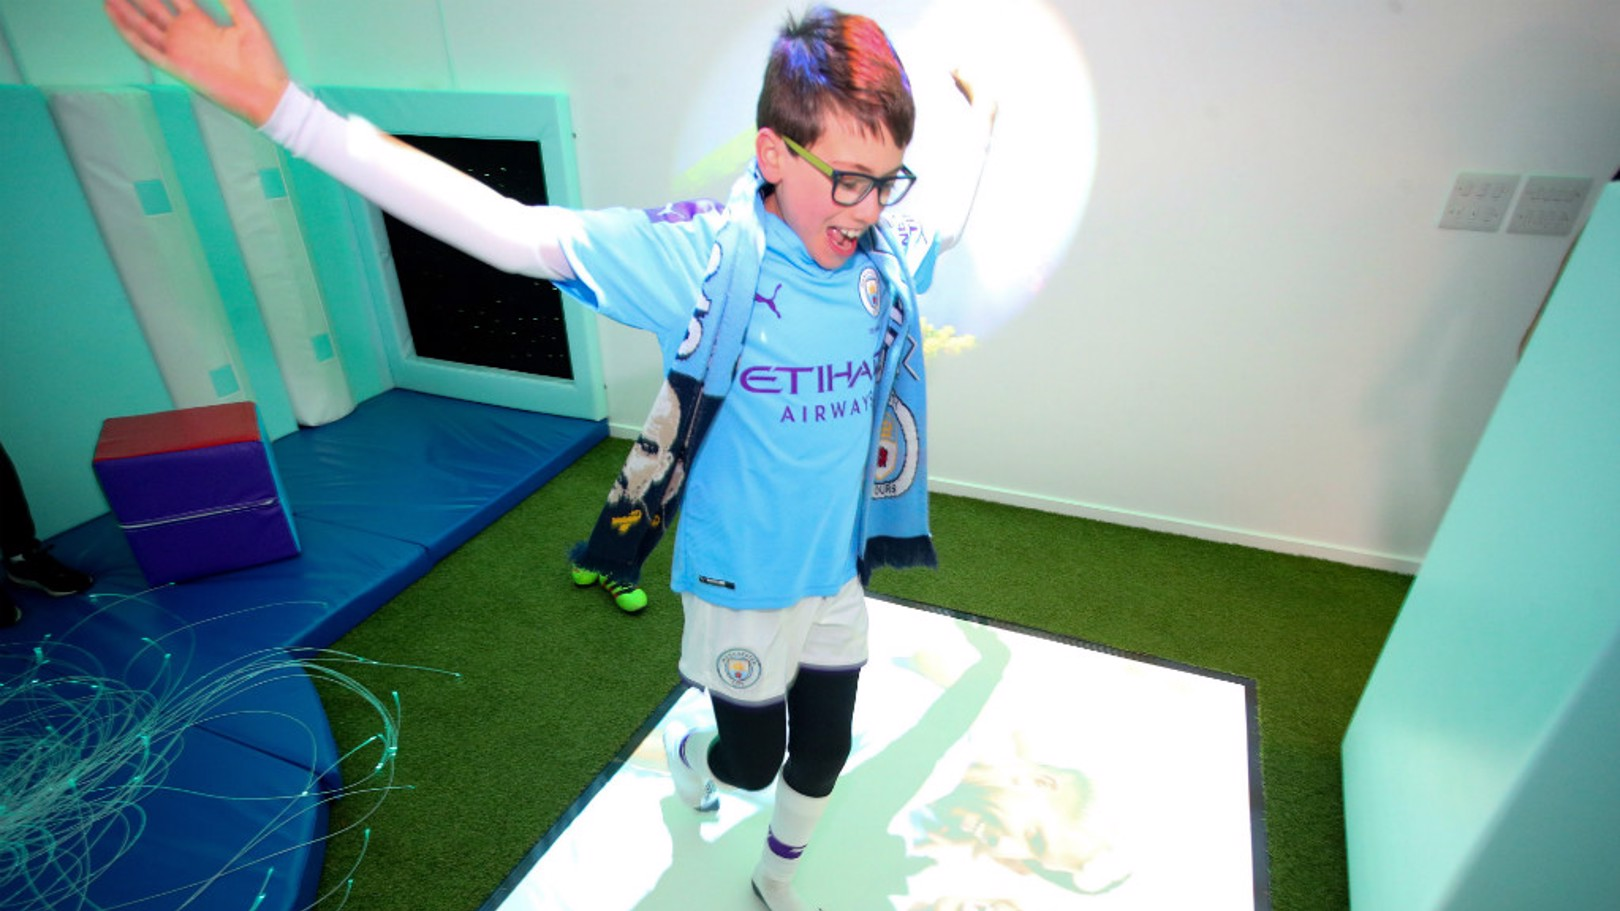 NOW OPEN: The sensory room at the Etihad Stadium.